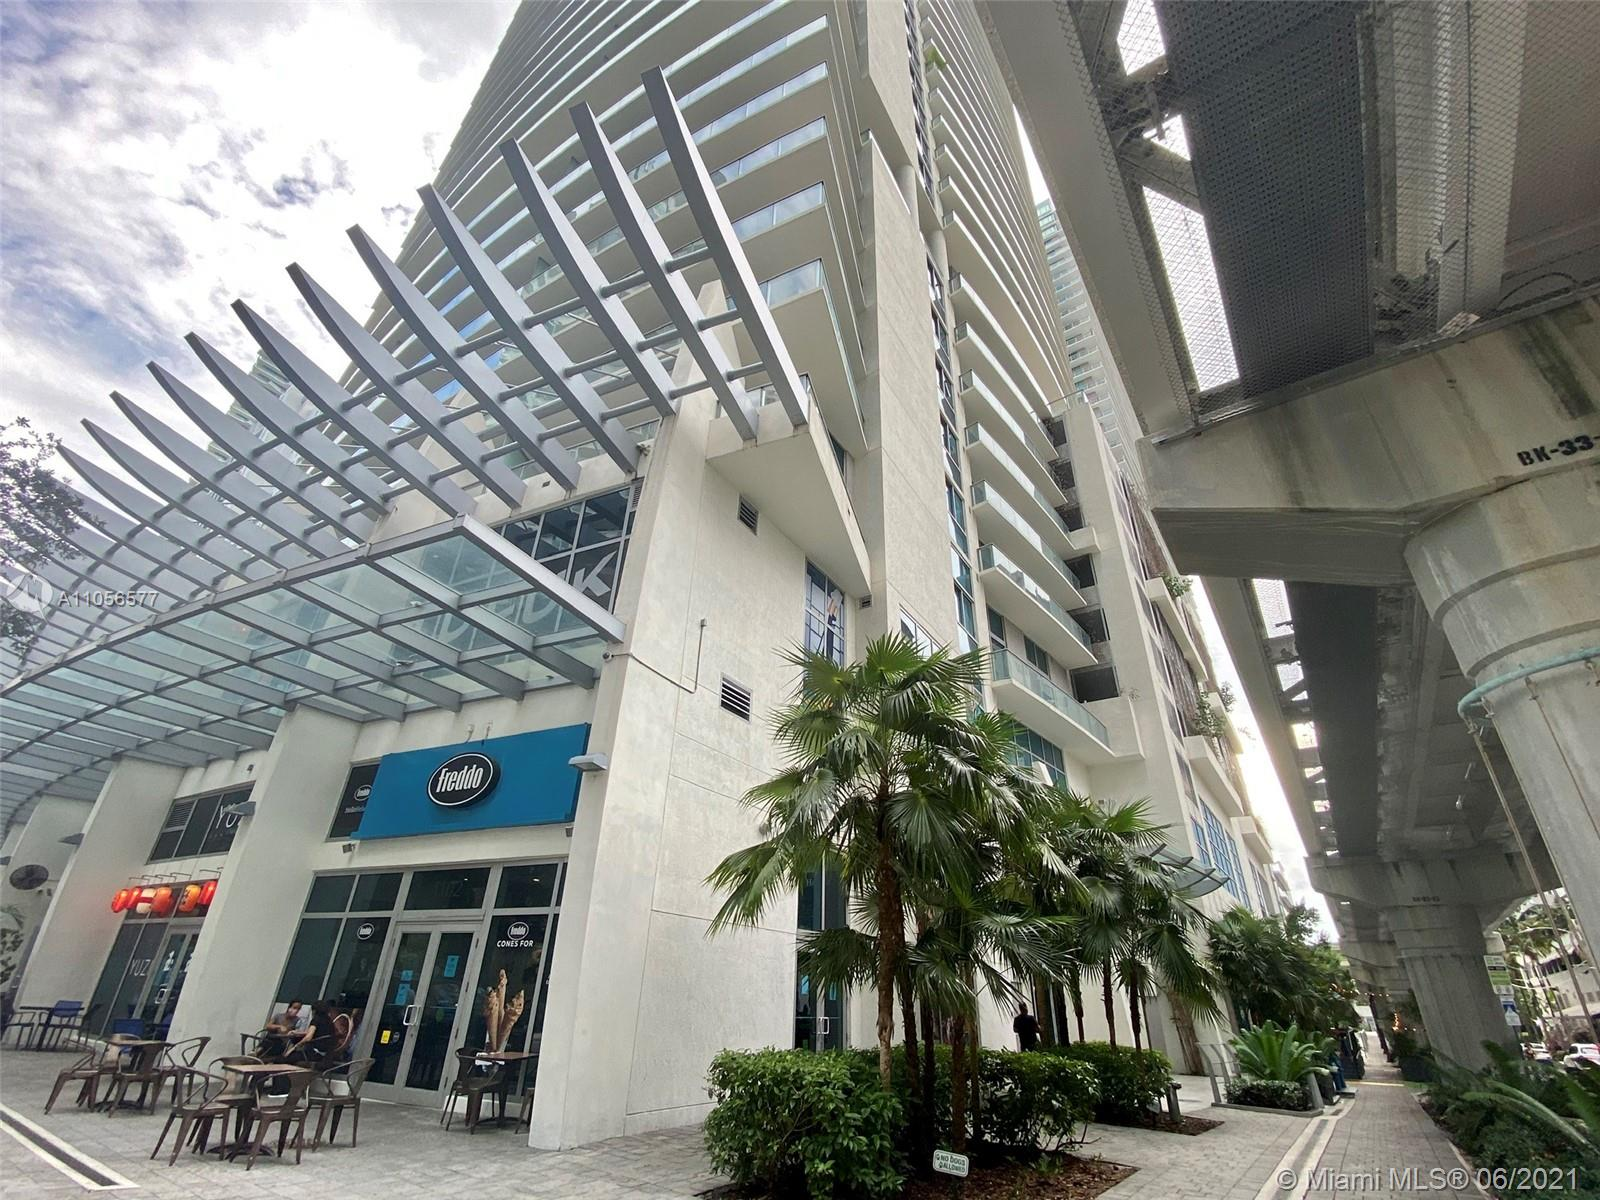 BRICKELL STUDIO AT MILLECENTO BUILDING WITH  AMAZING VIEWS. CLOSE TO MARY BRICKELL VILLAGE, RESTAURANTS, BARS  AND SHOPS BEAUTIFUL KITCHEN. AMAZING AMENITIES POOL, FITNESS CENTER, MOVIE THEATER, LIBRARY, POOL TABLE, VALET, 24/7 SECURITY. WASHER AND DRYER INSIDE THE UNIT. BEST LOCATION.